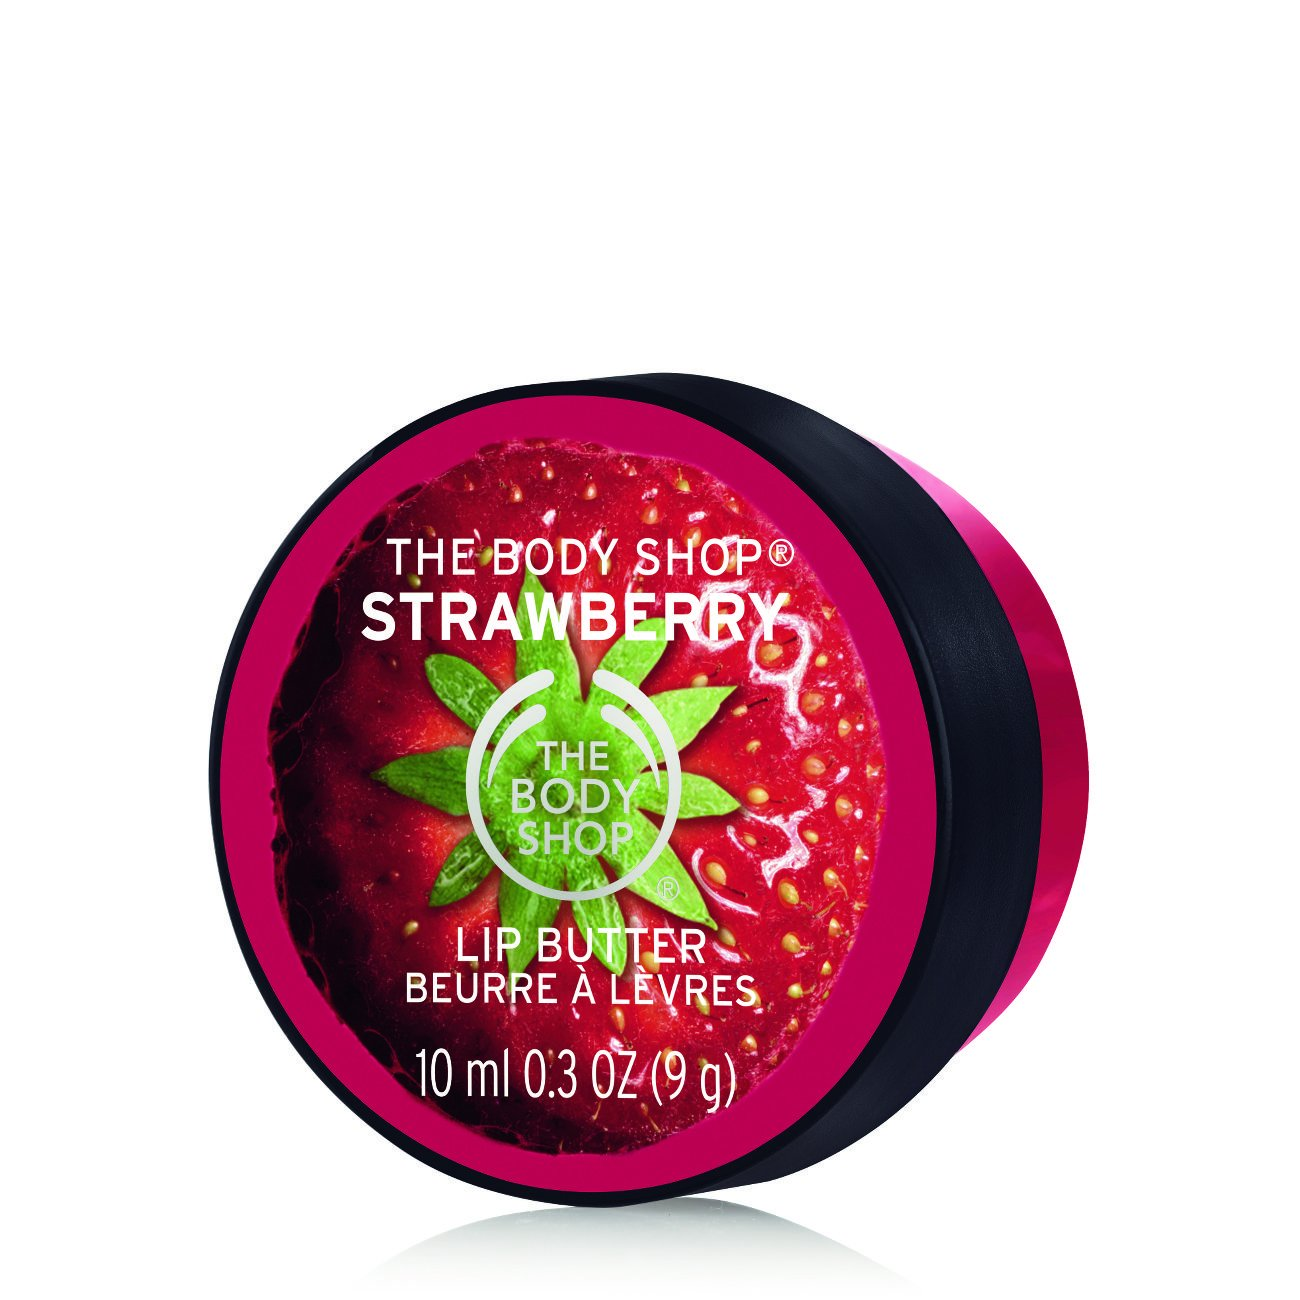 The Body Shop Strawberry Lip Butter - 10ml by The Body Shop